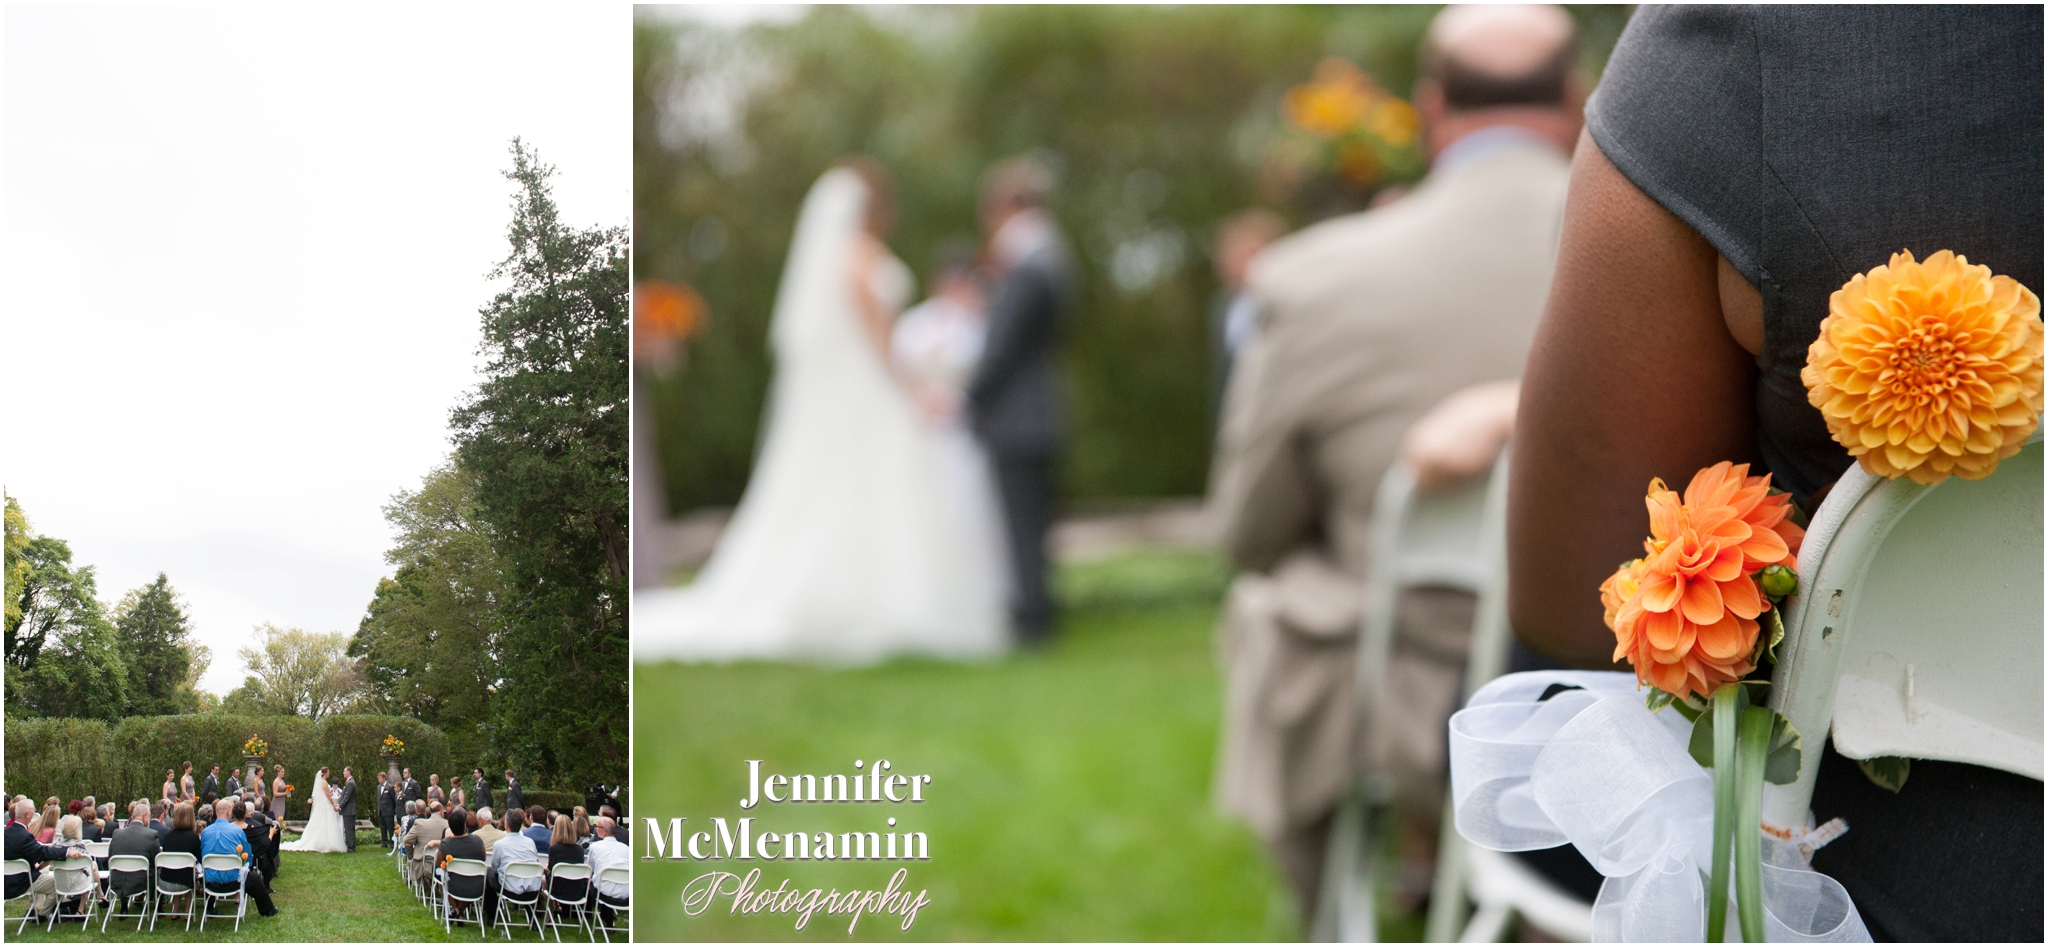 053-HenningMiller_01916-0389_JenniferMcMenaminPhotography_Evergreen-Museum-And-Carriage-House_Evergreen-wedding_Baltimore-wedding-photographer_Baltimore-wedding-photography